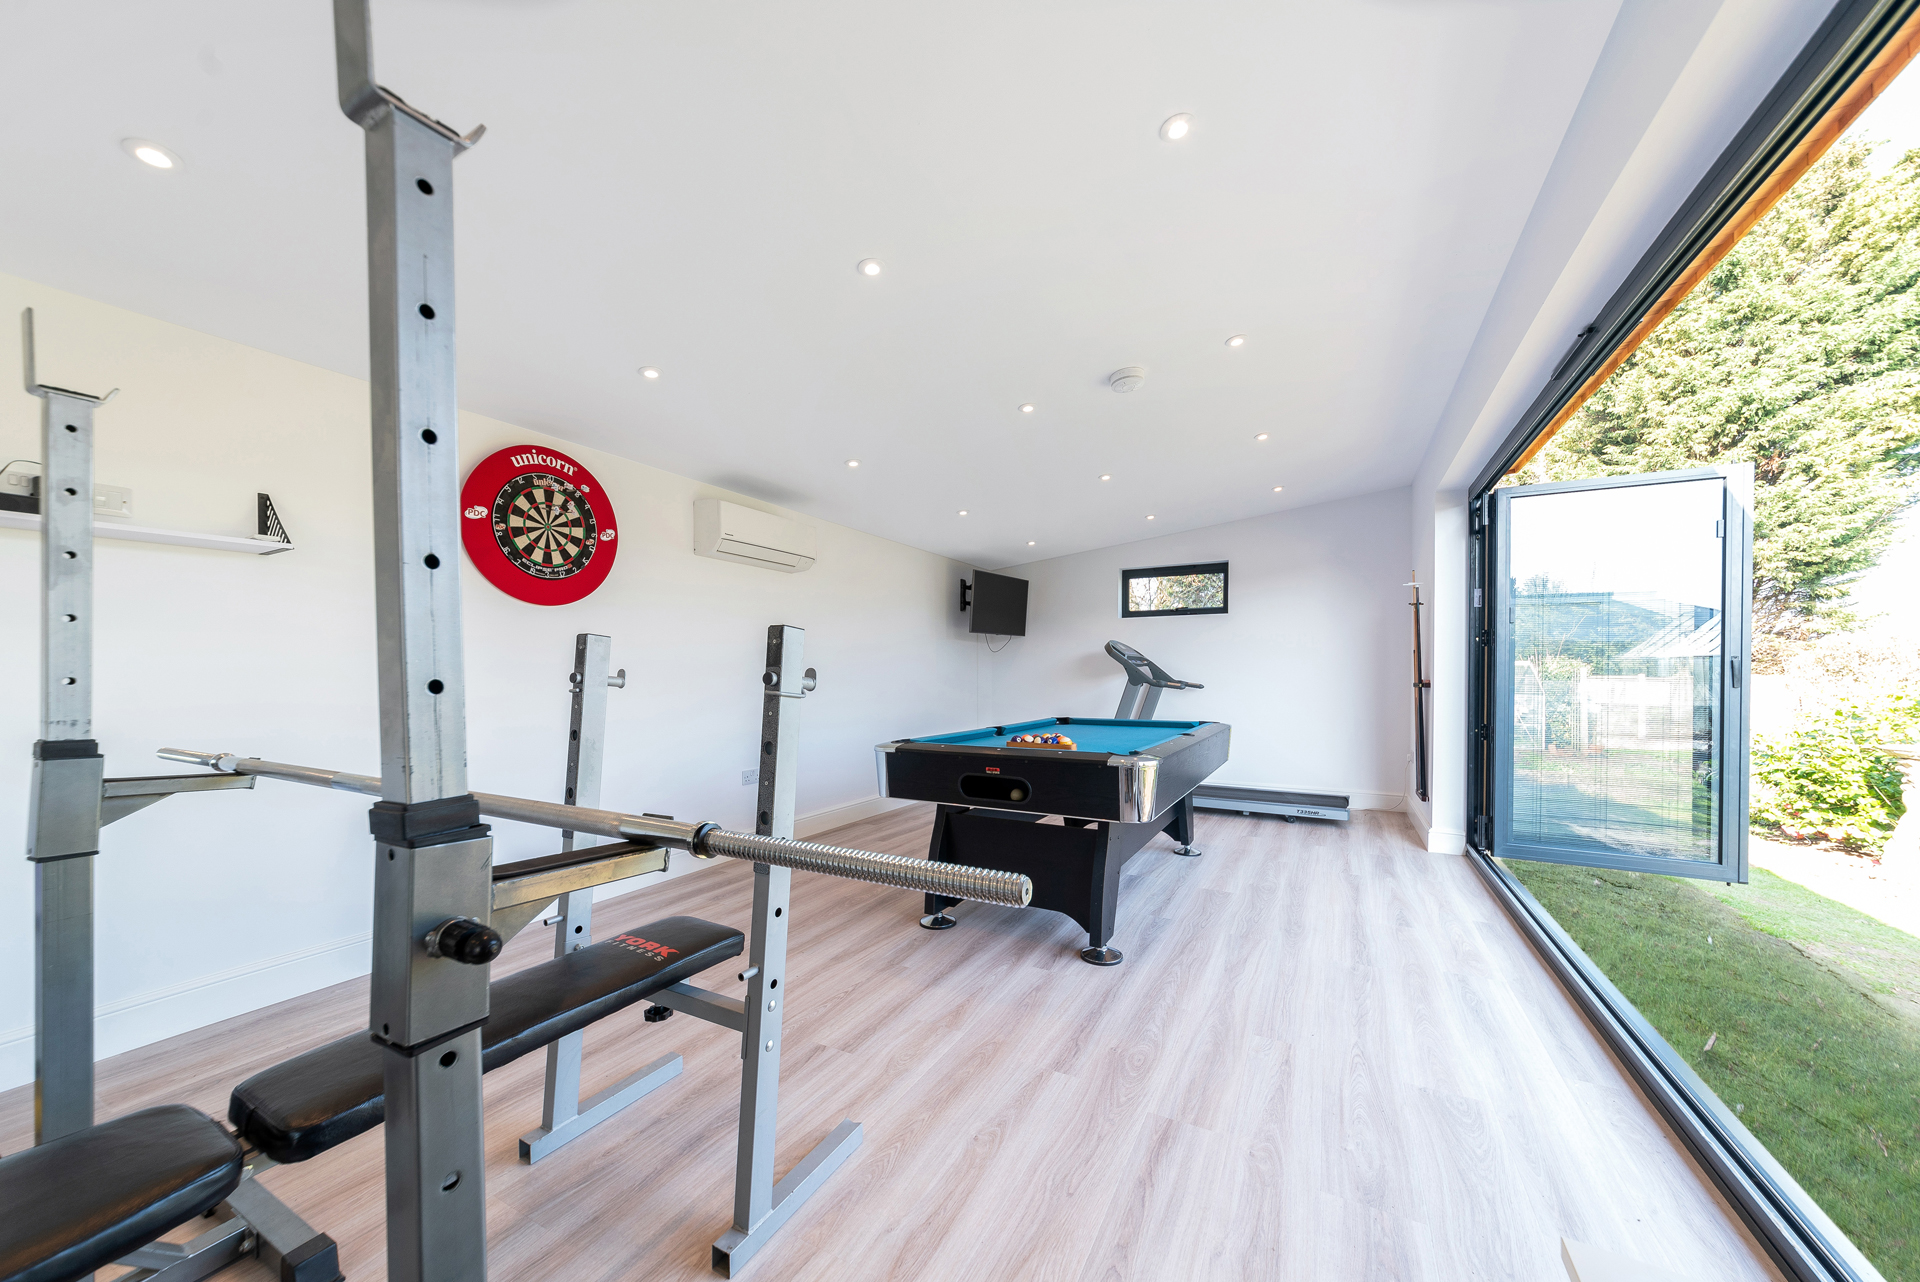 Garden room for games and fitness studio